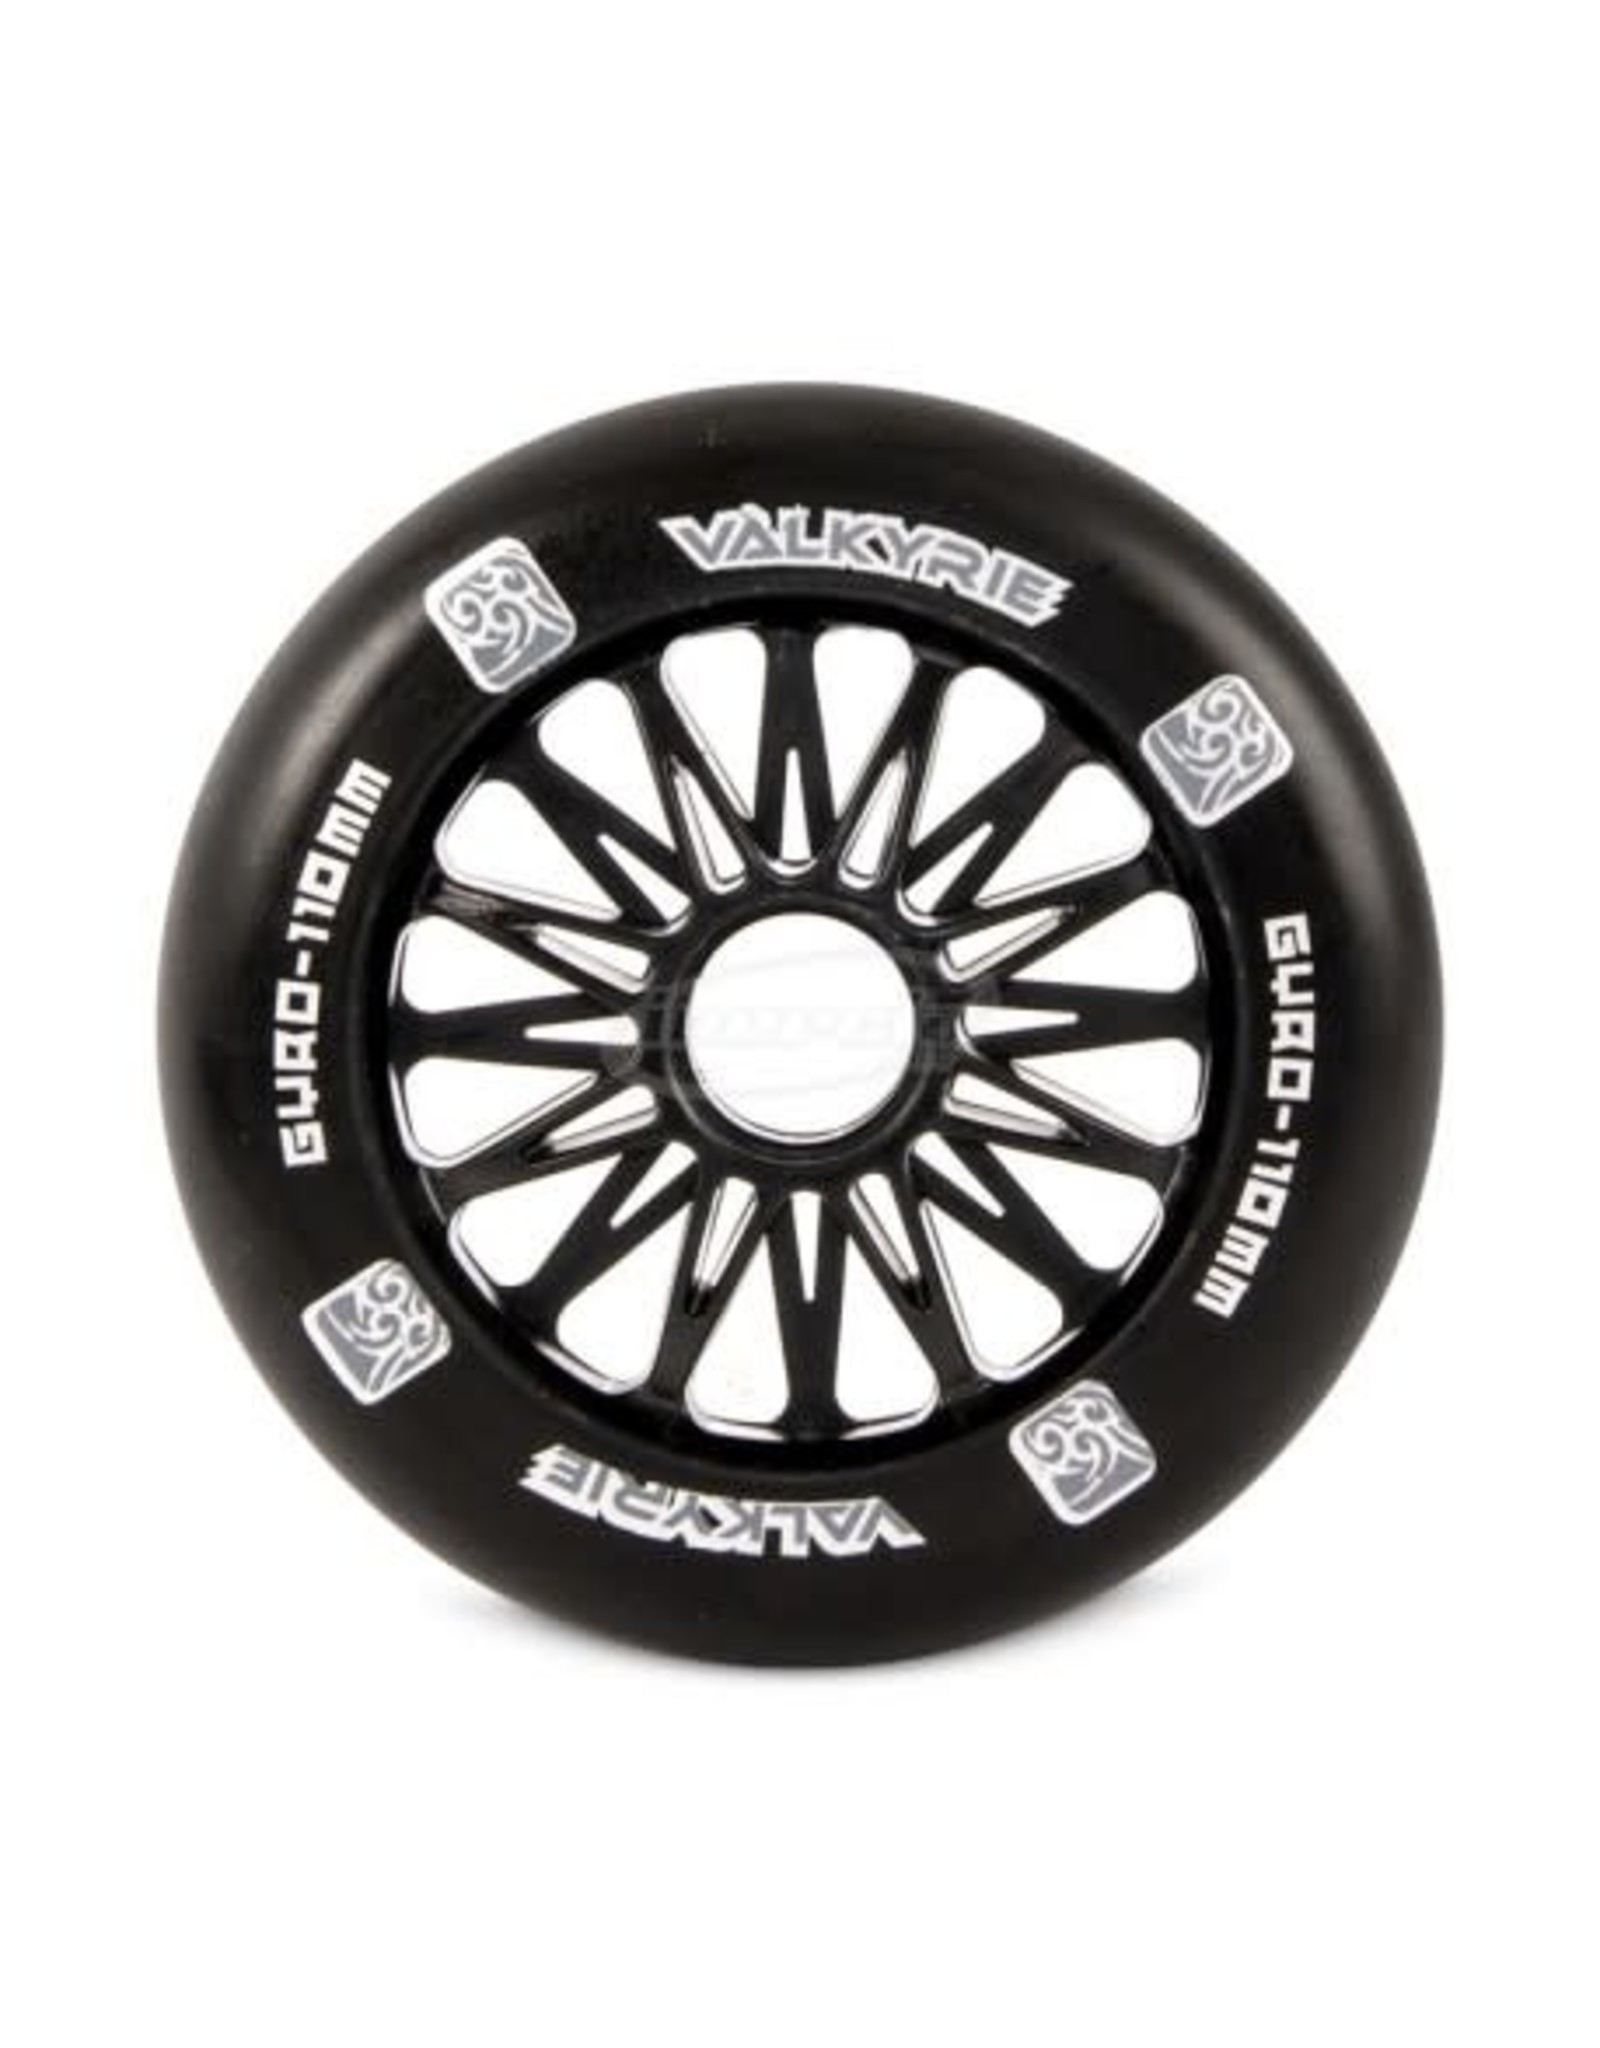 Valkrie Gyro 110mm 85a wheels (4pk)